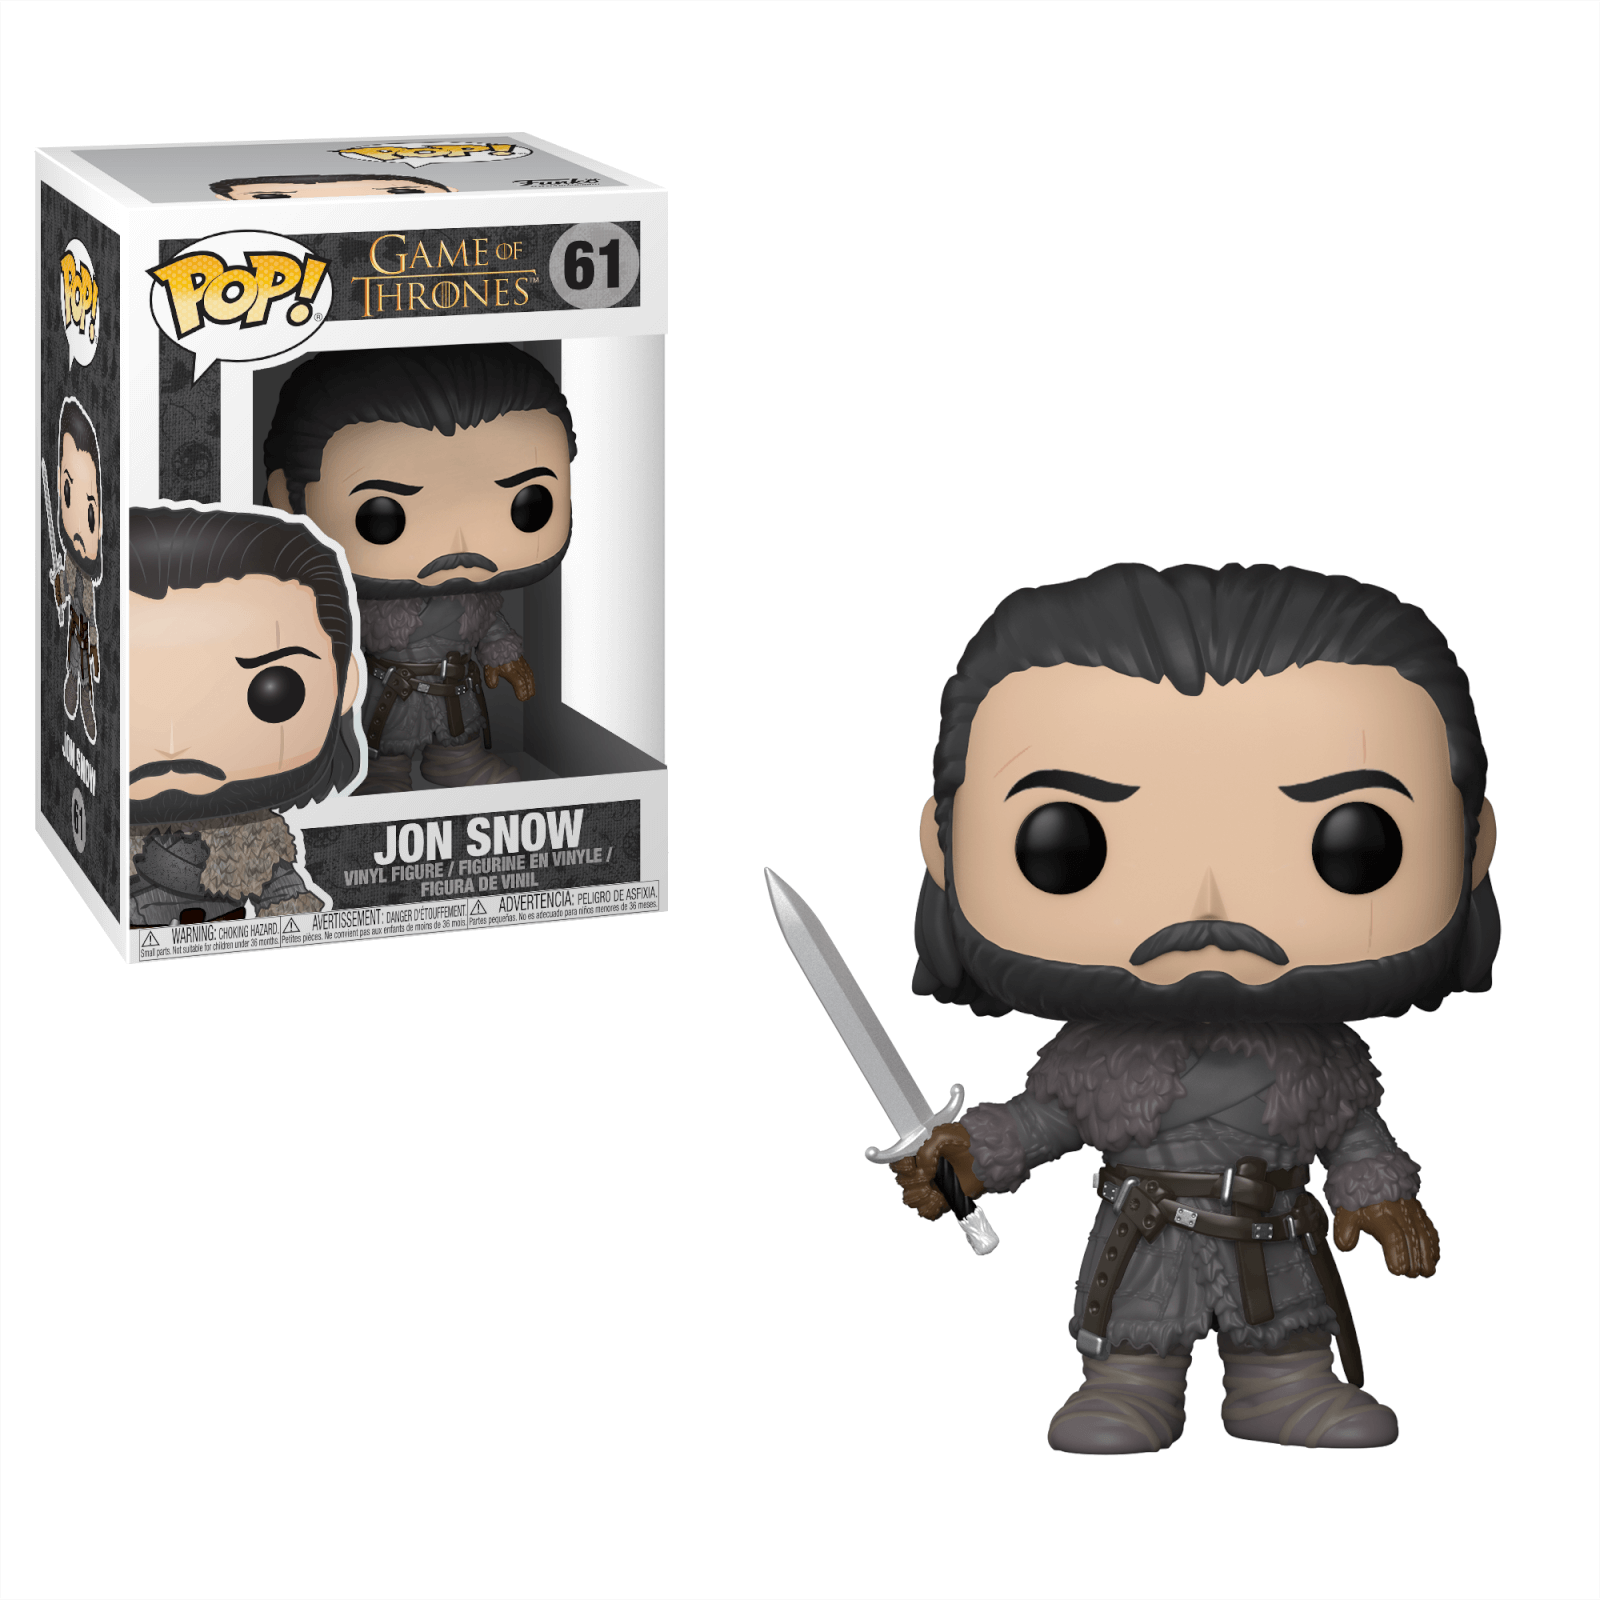 Game Of Thrones Jon Snow Beyond The Wall Pop Vinyl Figure Vinyl Figures Pop Vinyl Figures Pop Game Of Thrones